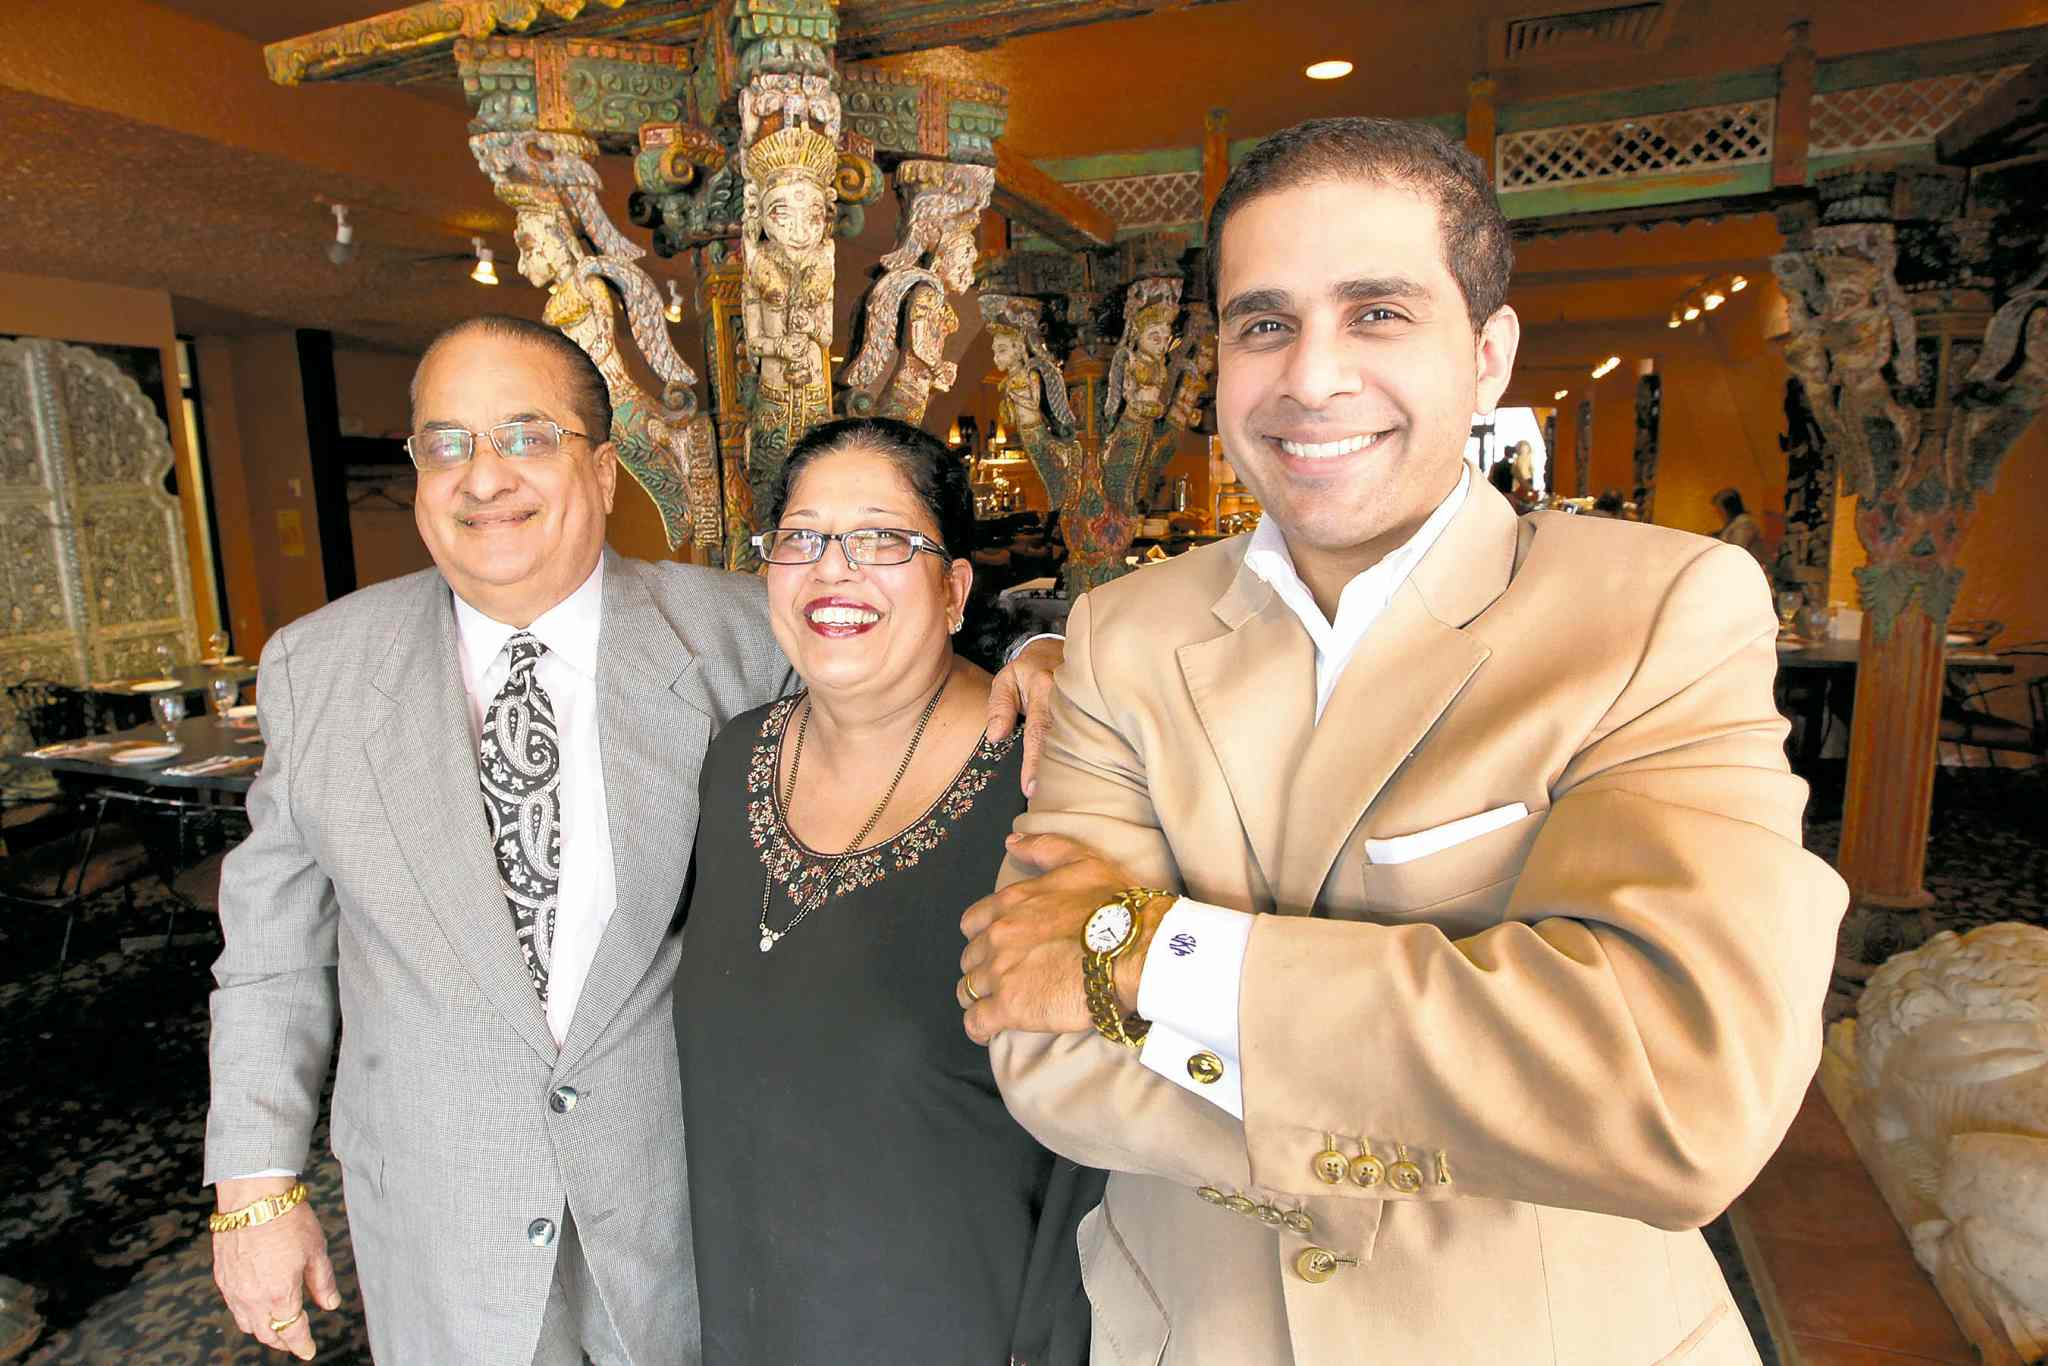 Sachit Mehra (right) with his father Kamal (left and) mother Sudha at the family's East India Company Pub & Eatery restaurant. Sachit is considering running for city council in St. Norbert.